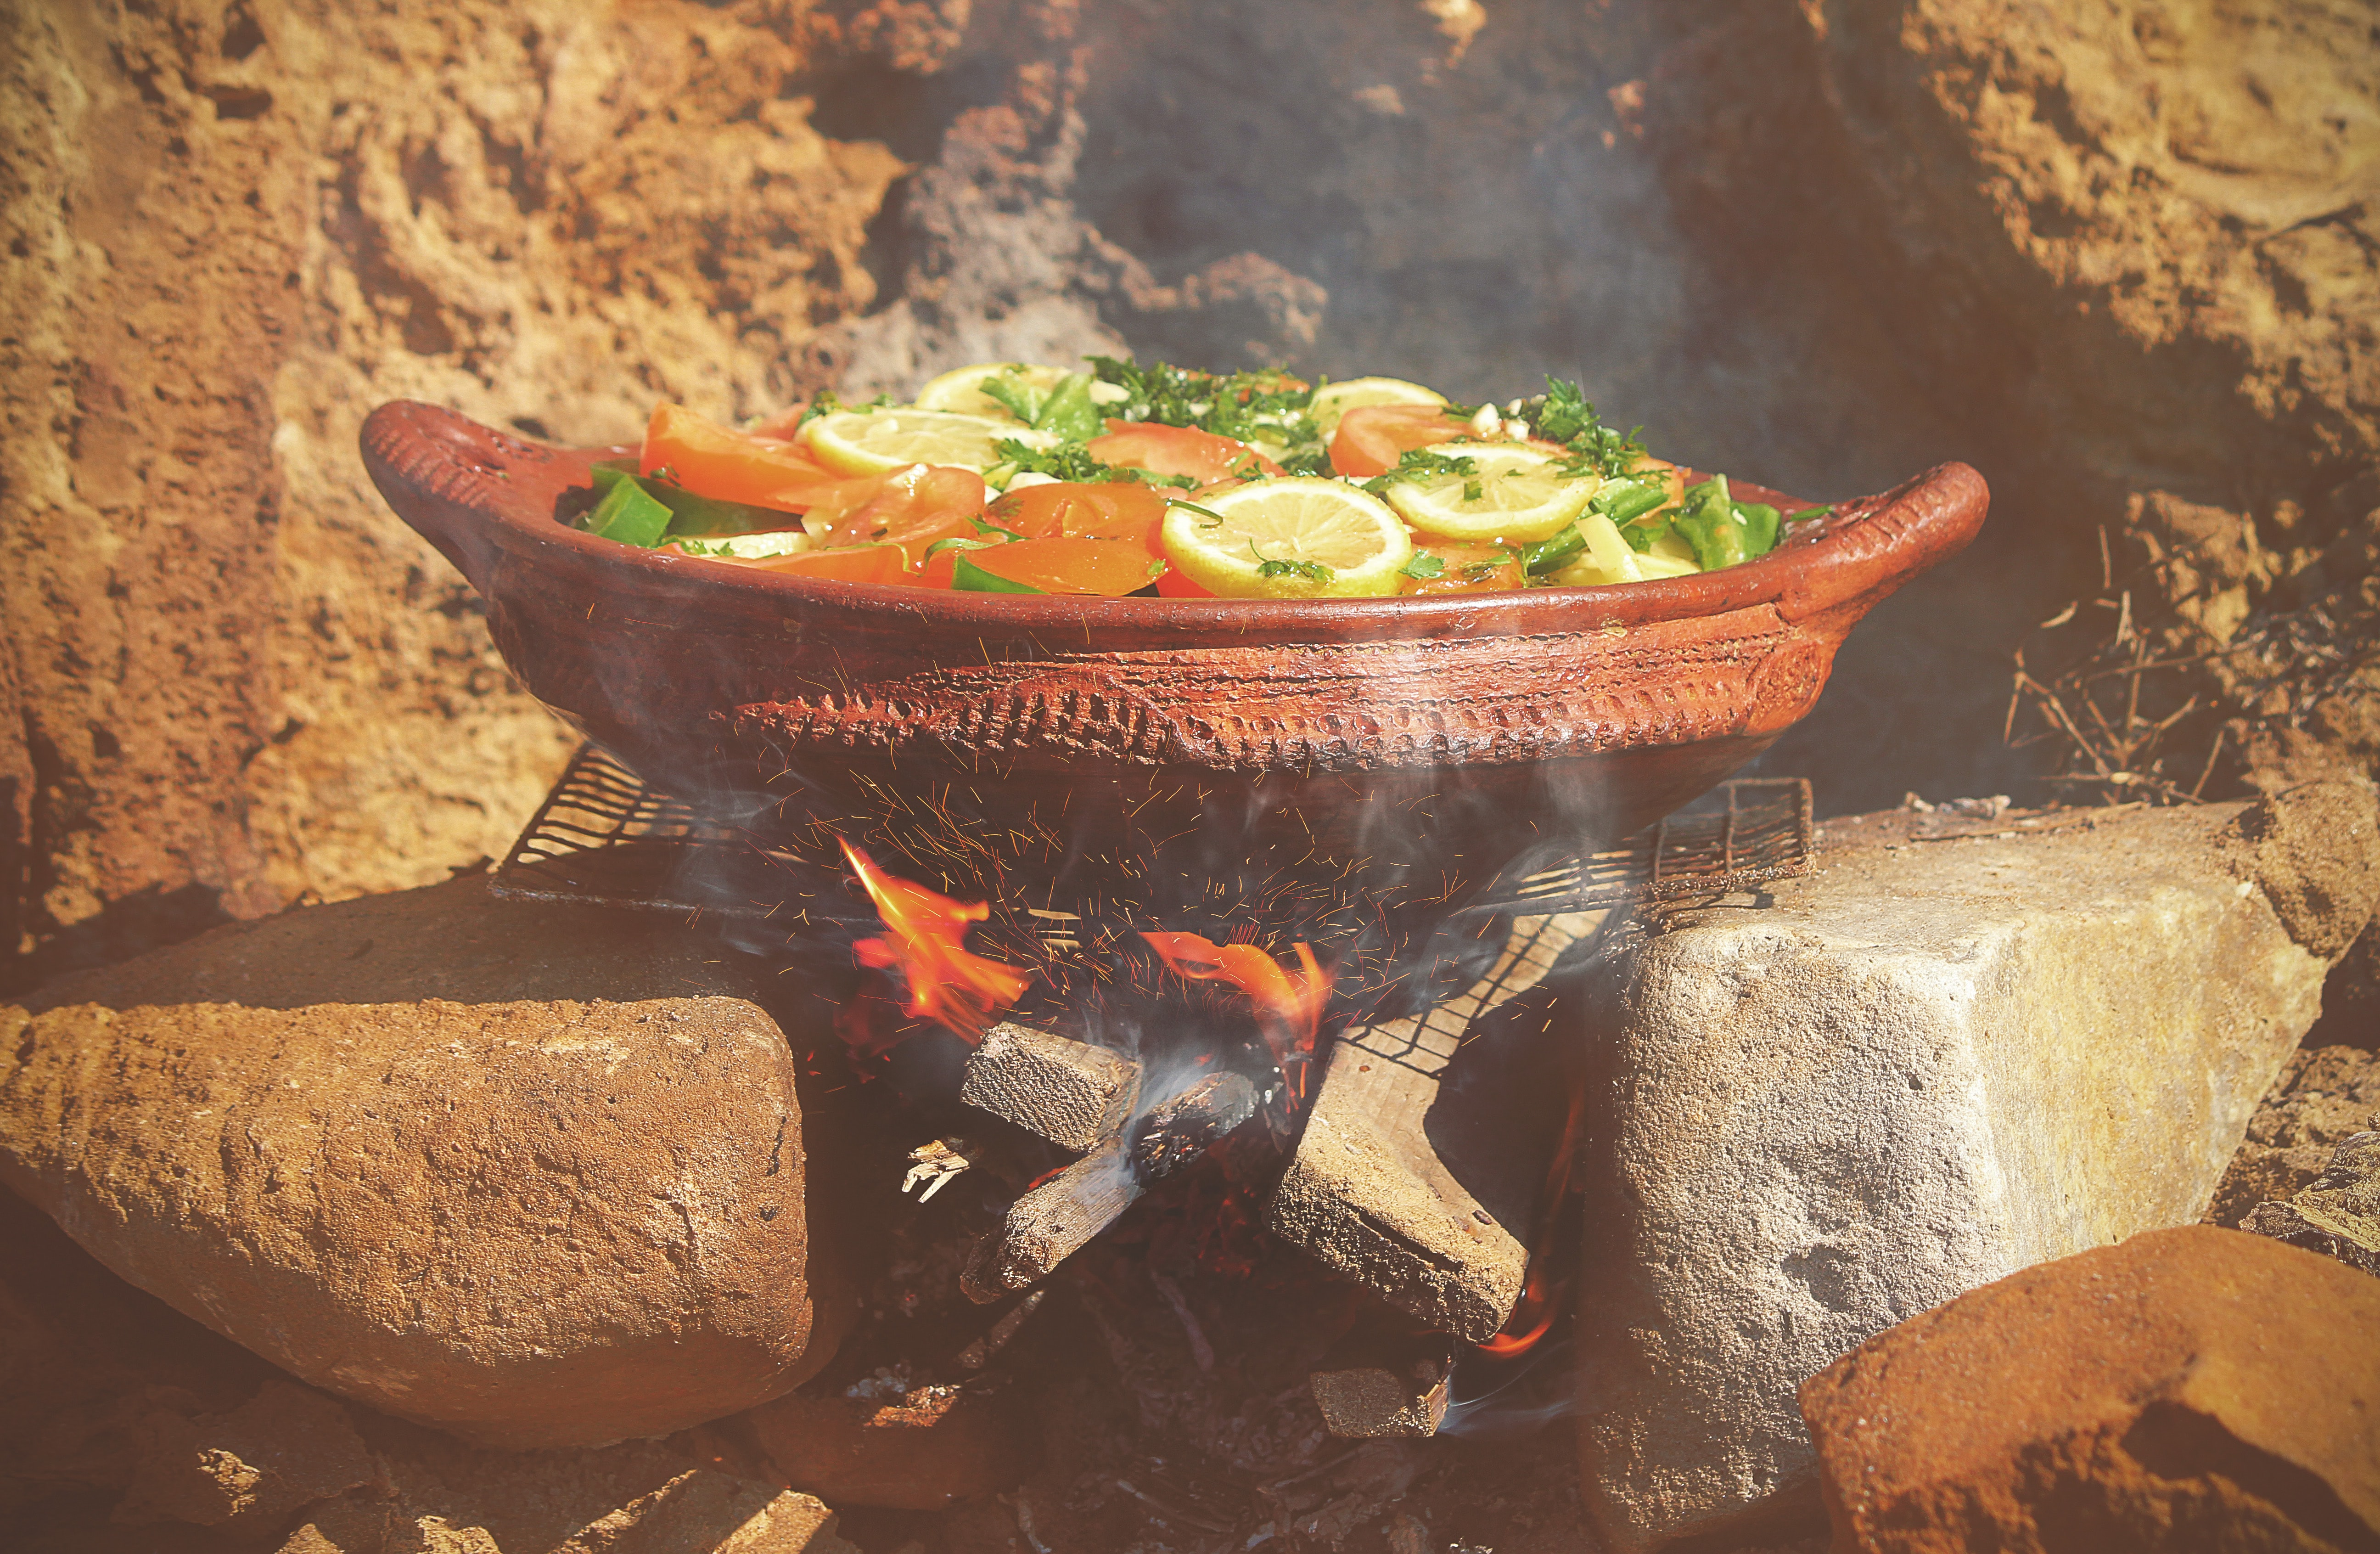 Moroccan dish with lemons and vegetables cooking over hot coals